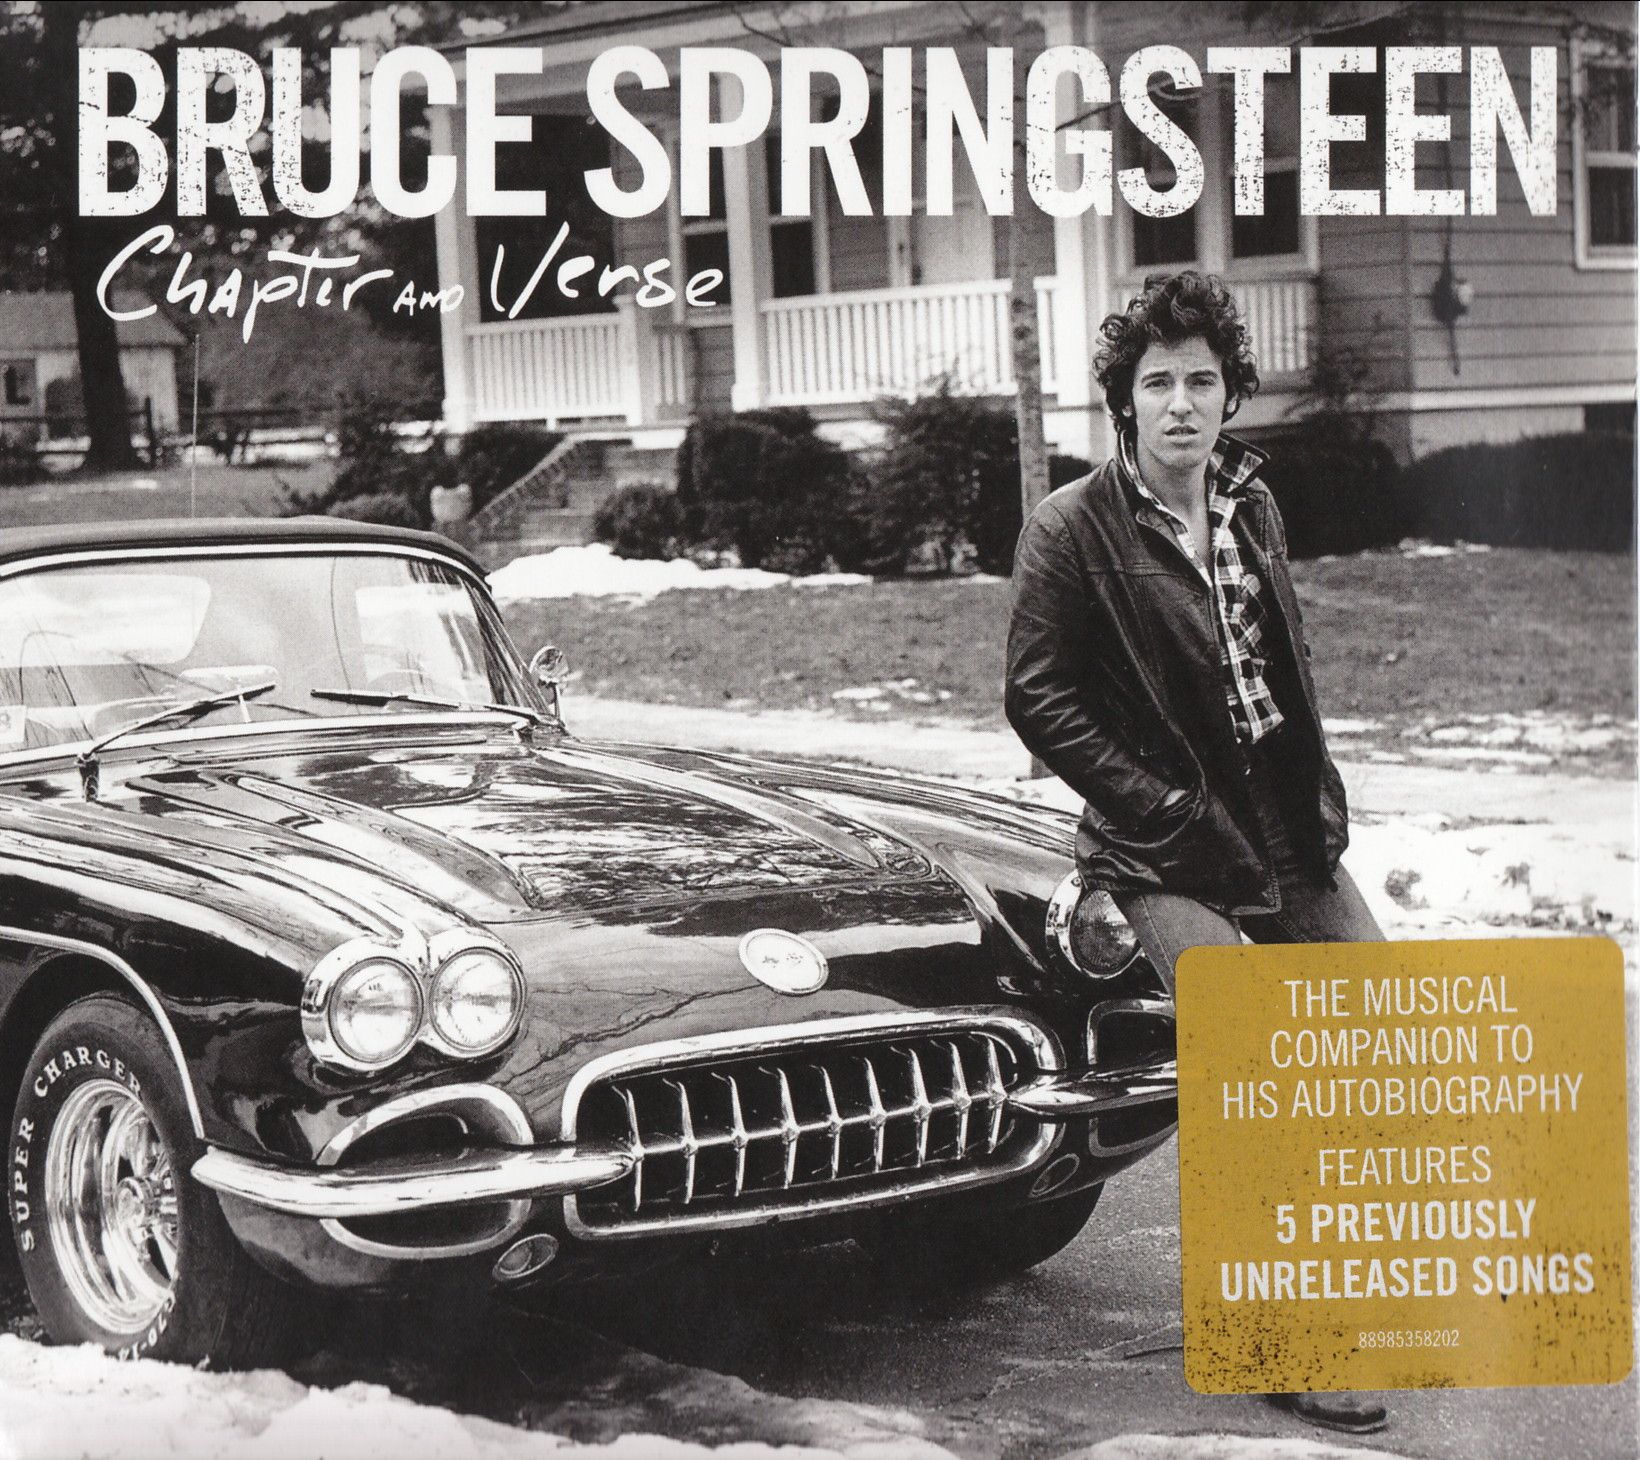 Bruce Springsteen - Chapter And Verse album cover